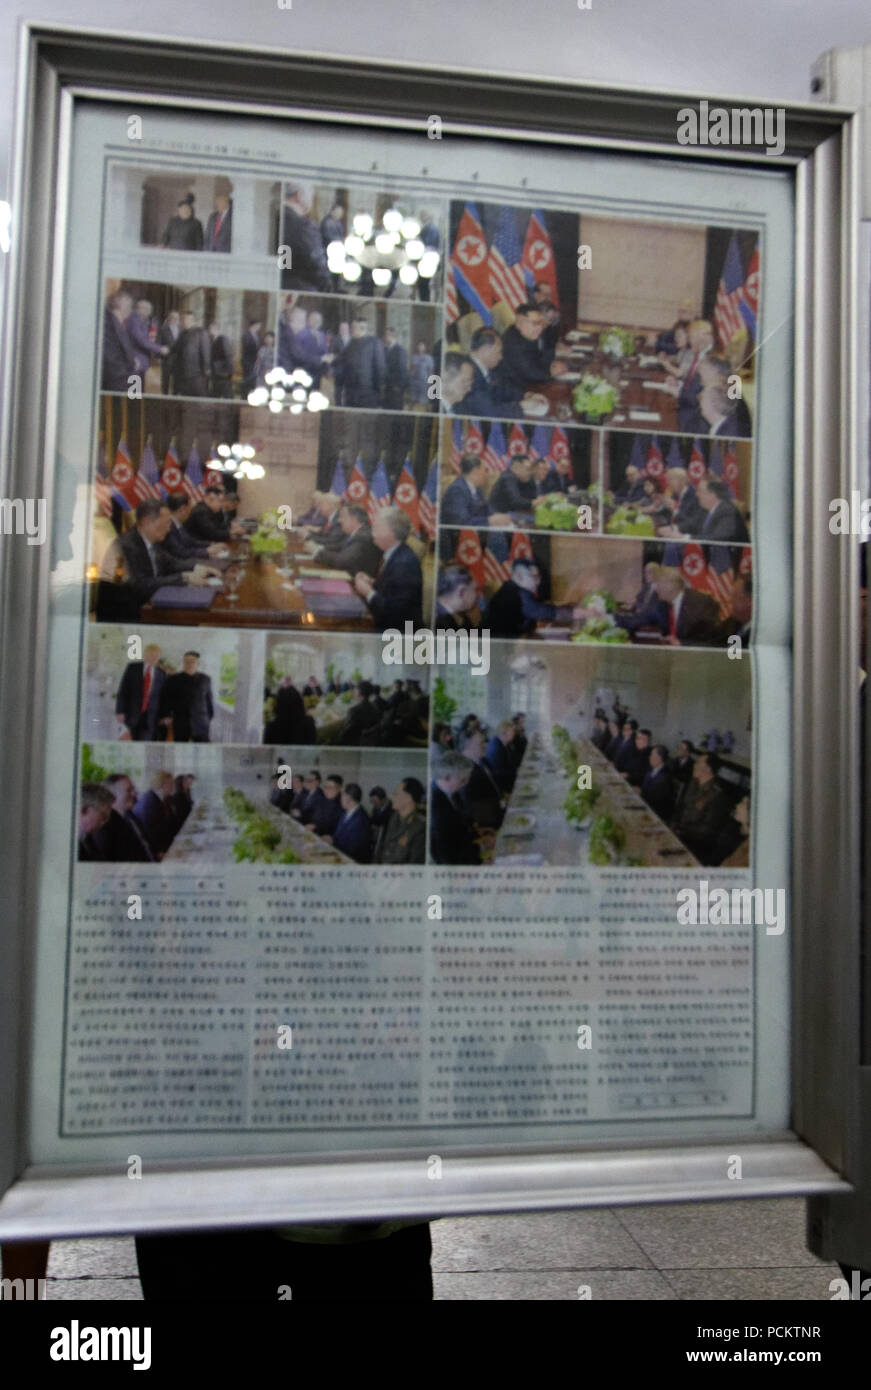 The summit meeting of Kim Jong-un and President Donald Trump is reported on the Pyongyang underground new bulletin boards. - Stock Image